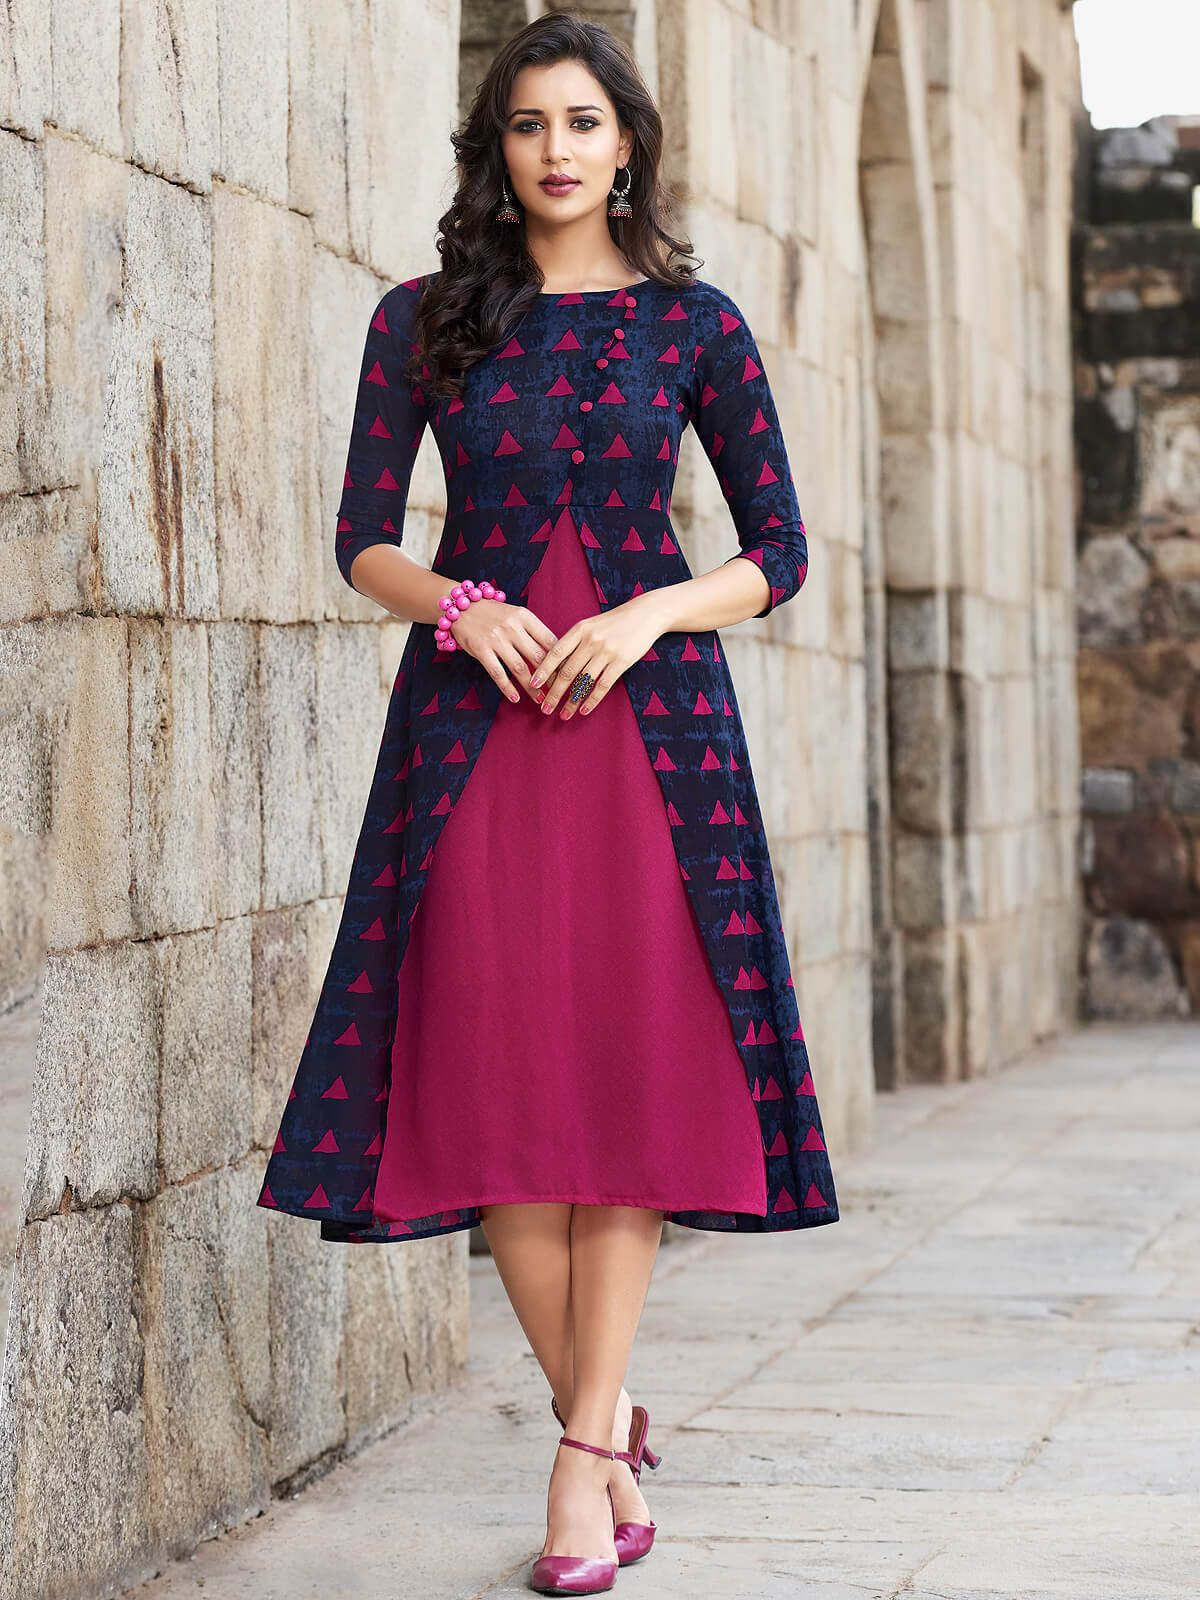 Normal Kurtis With Images Dress Neck Designs Frock For Women